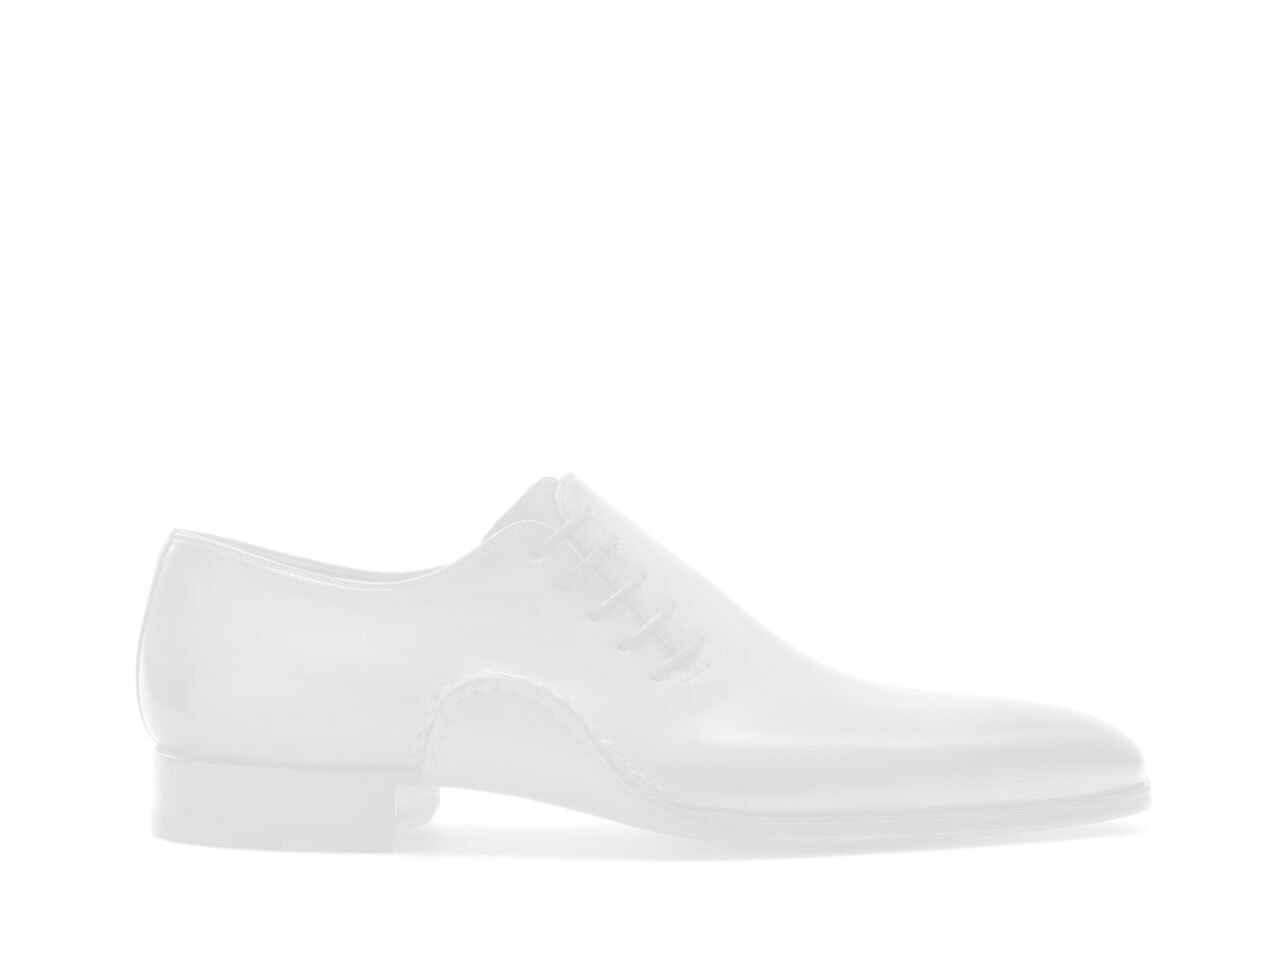 Sole of the Magnanni Spero Grey Men's Sneakers